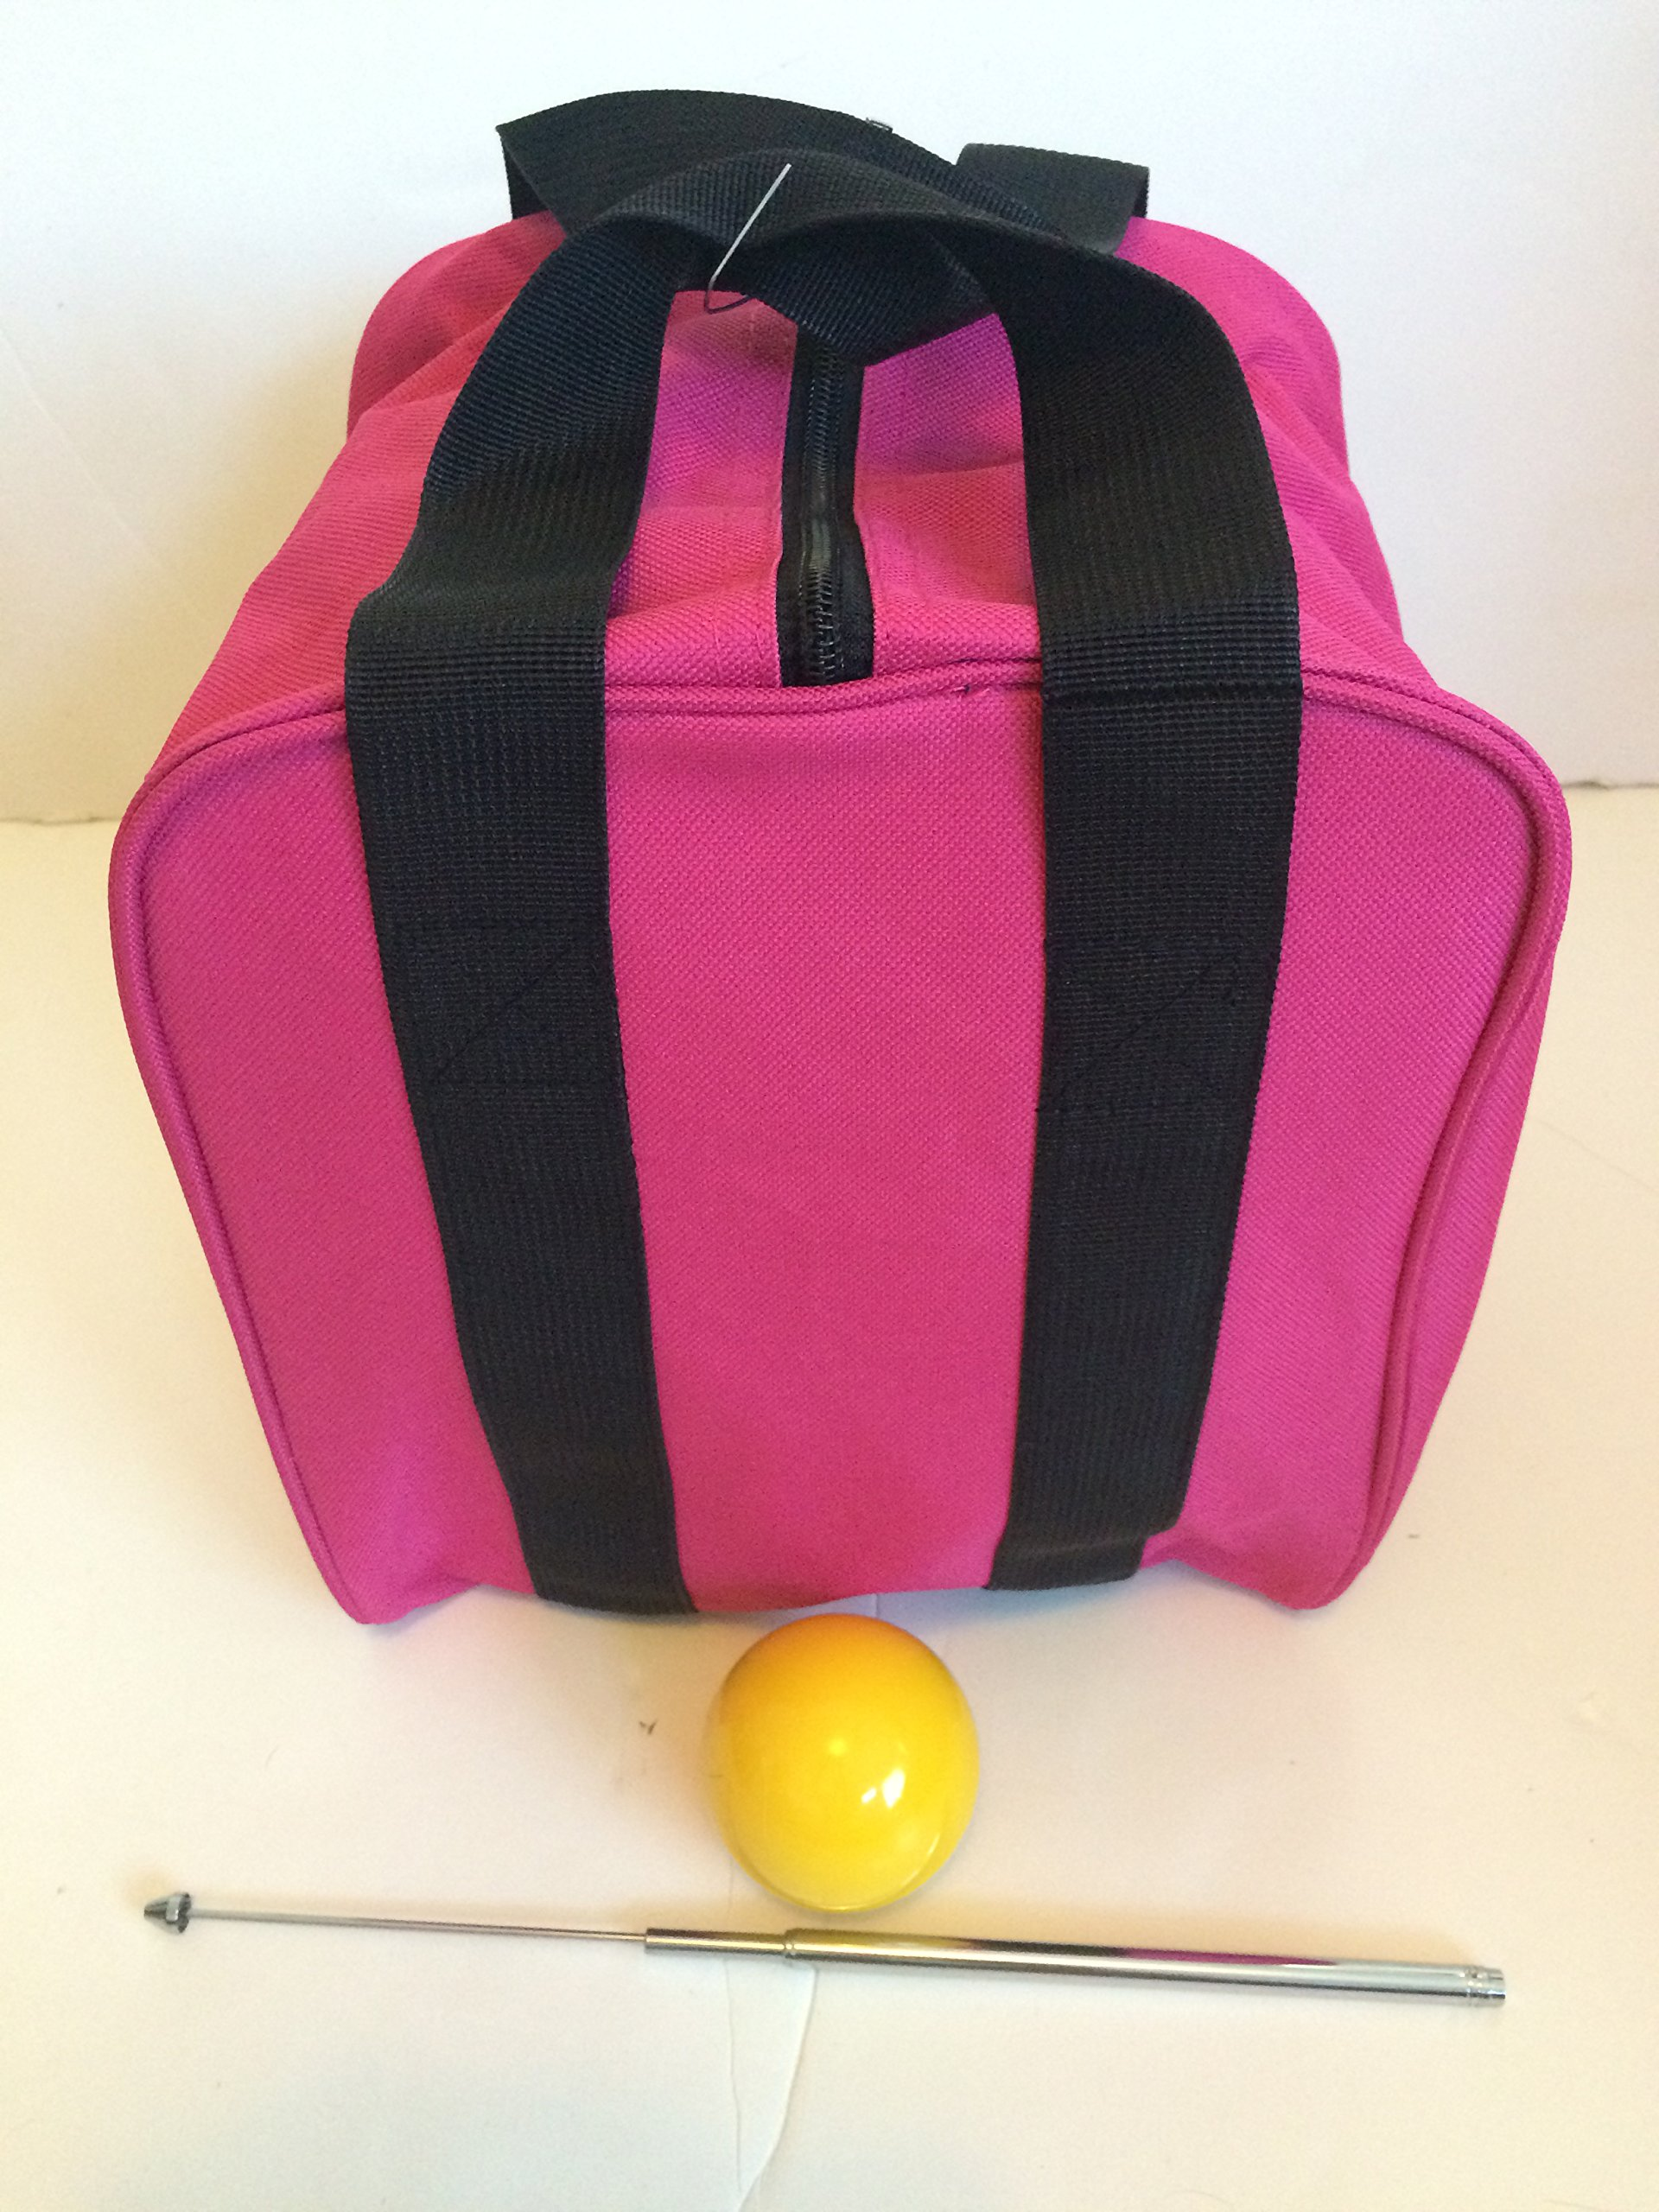 Unique Bocce Accessories Package - Extra Heavy Duty Nylon Bocce Bag (Pink with Black Handles), Yellow pallina, Extendable Measuring Device